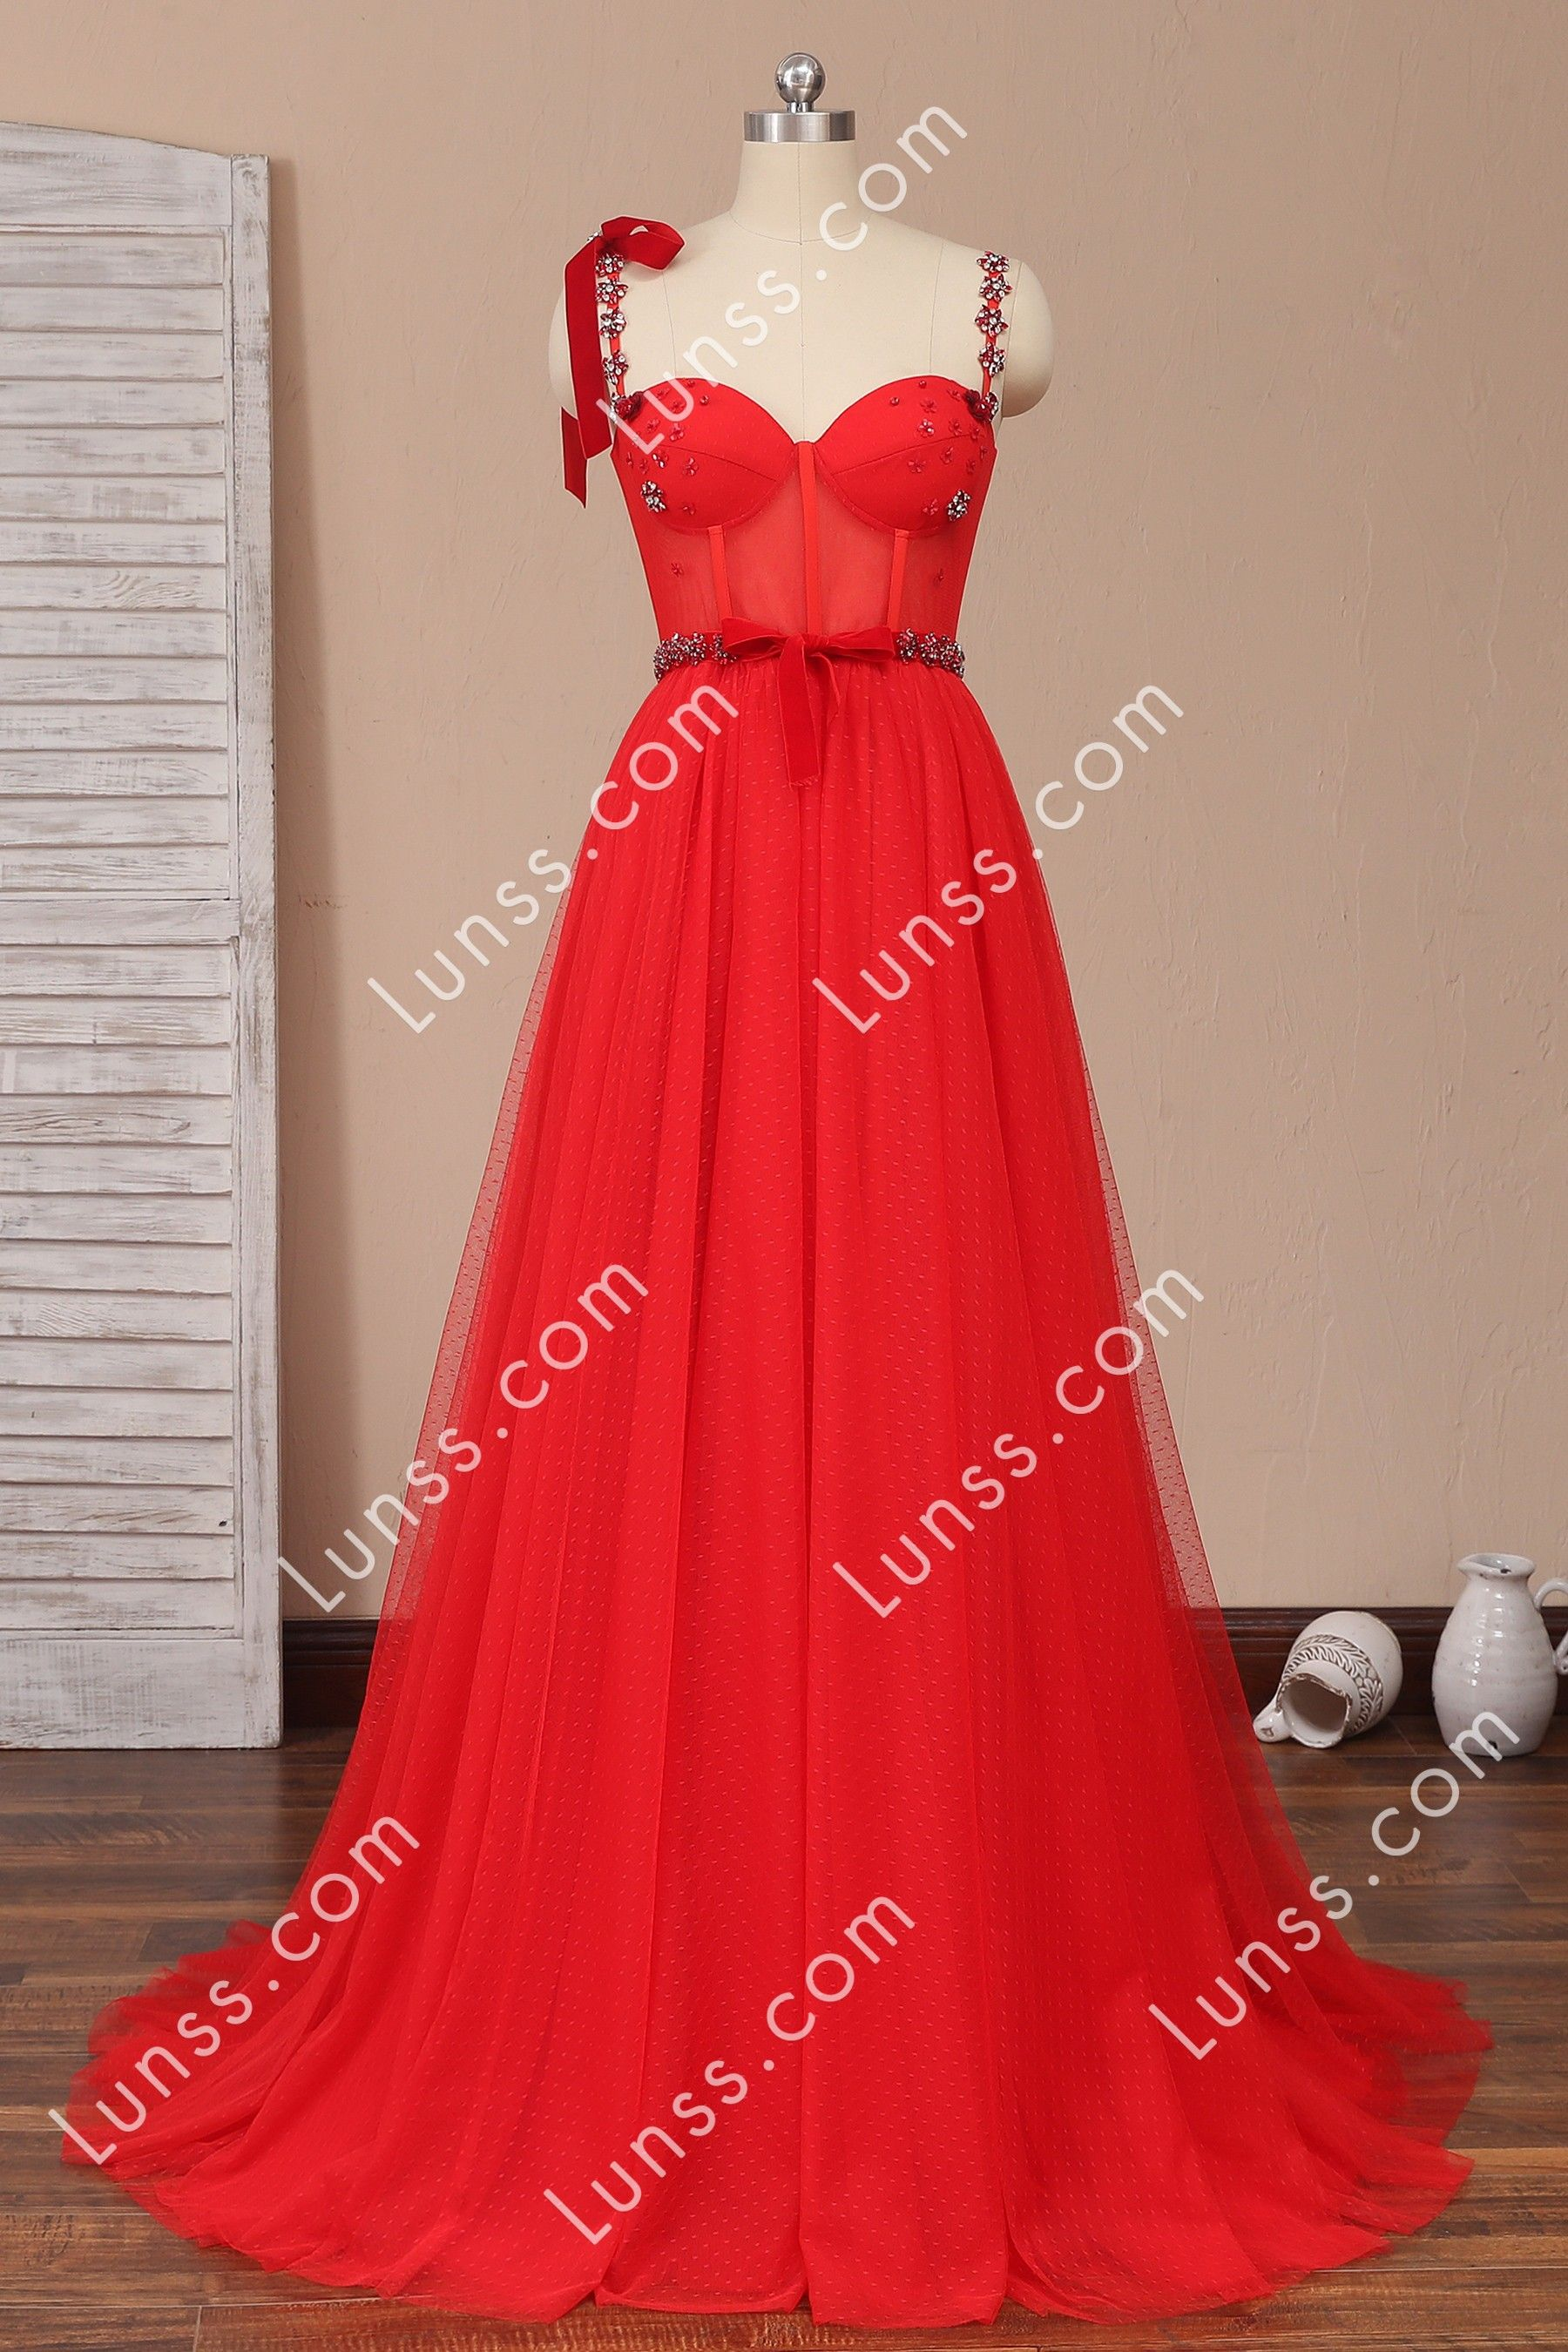 This Red Prom Dress Features Illusion Corset Bodice With Pretty Hand Sewn Diamond Decorating The Sweetheart Neckline And In 2021 Tulle Prom Dress Prom Dresses Dresses [ 2700 x 1800 Pixel ]